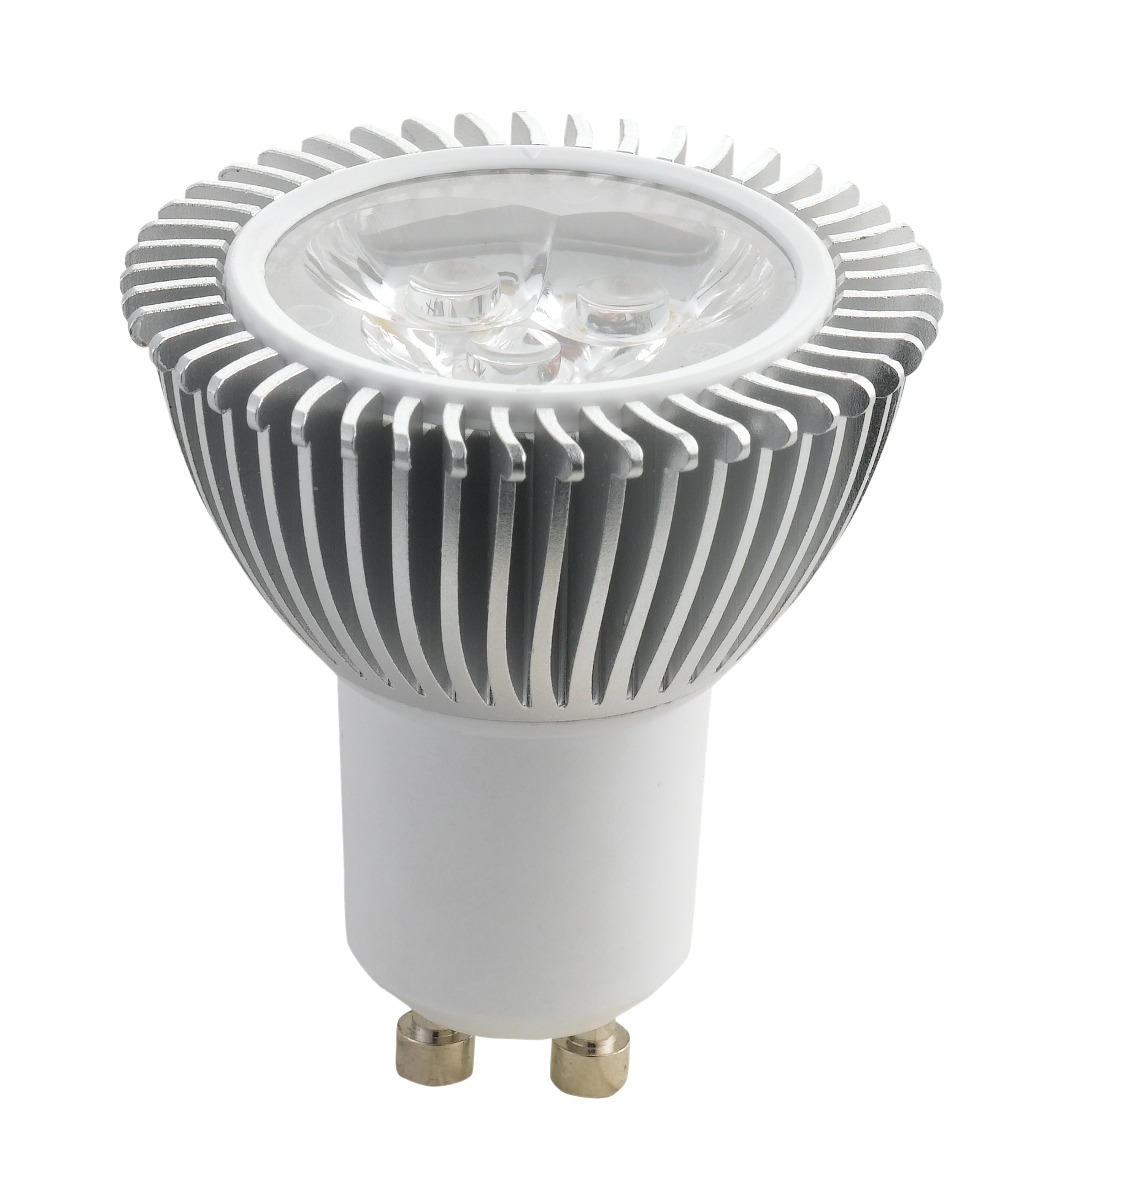 Lampada super led gu10 5w 2700k branco quente r 14 62 for Lampada led gu10